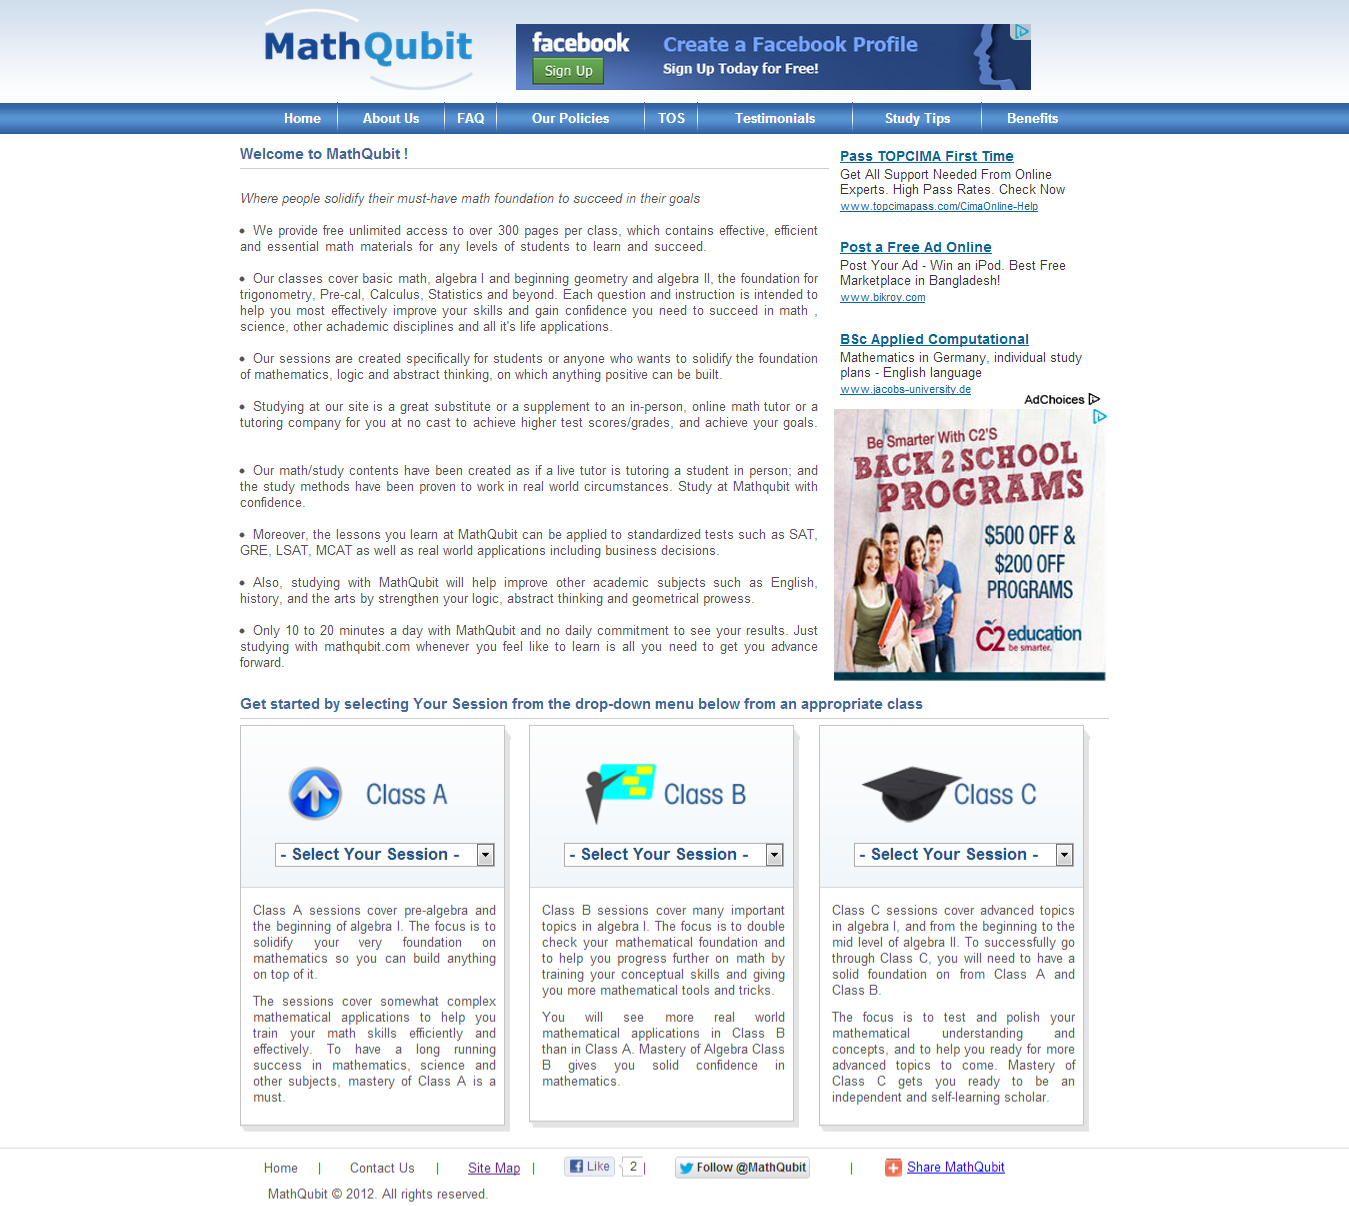 MathQubit.com Project